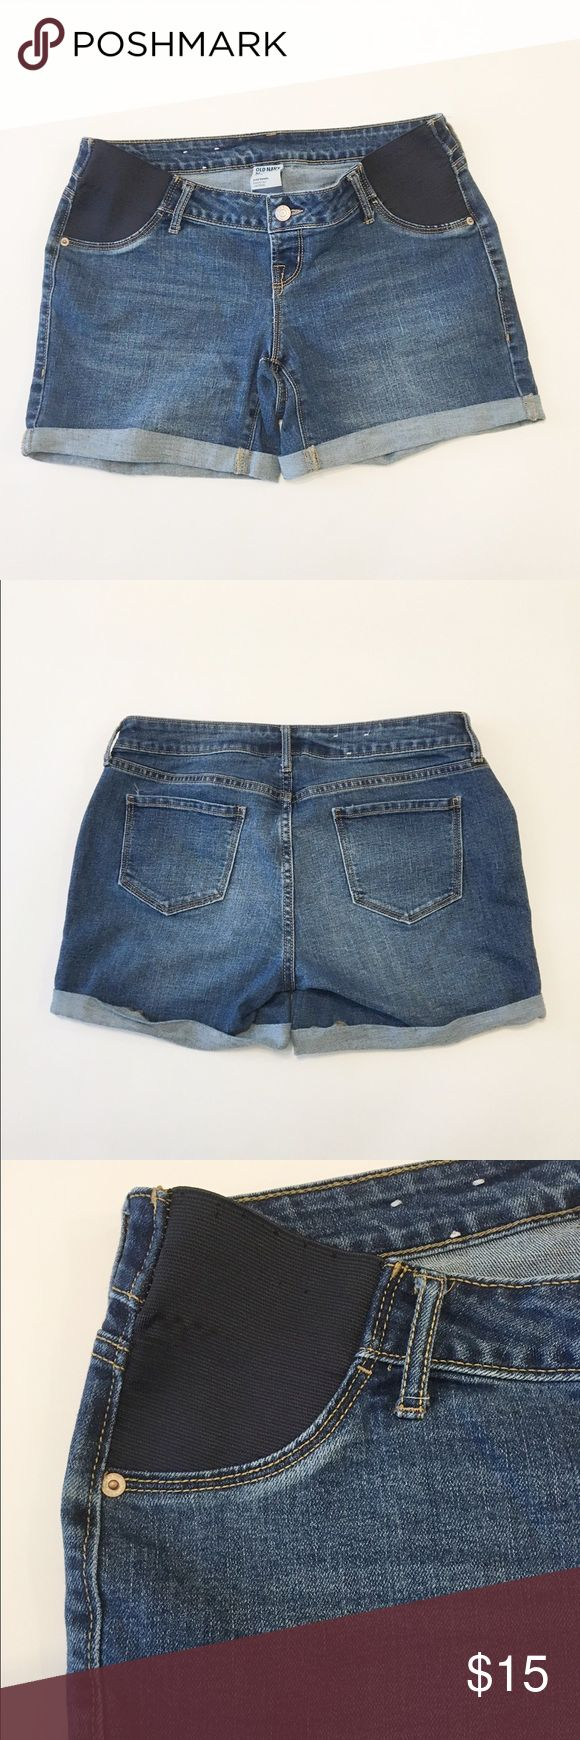 Maternity Shorts Preloved maternity shorts with minimal fraying on the side panel as shown in last 2 photos. Still great shorts can't see the fraying when being worn with a top. Super comfy and stretchy waist. Size on tag says size 4 regular/ standard. Old Navy Shorts Jean Shorts